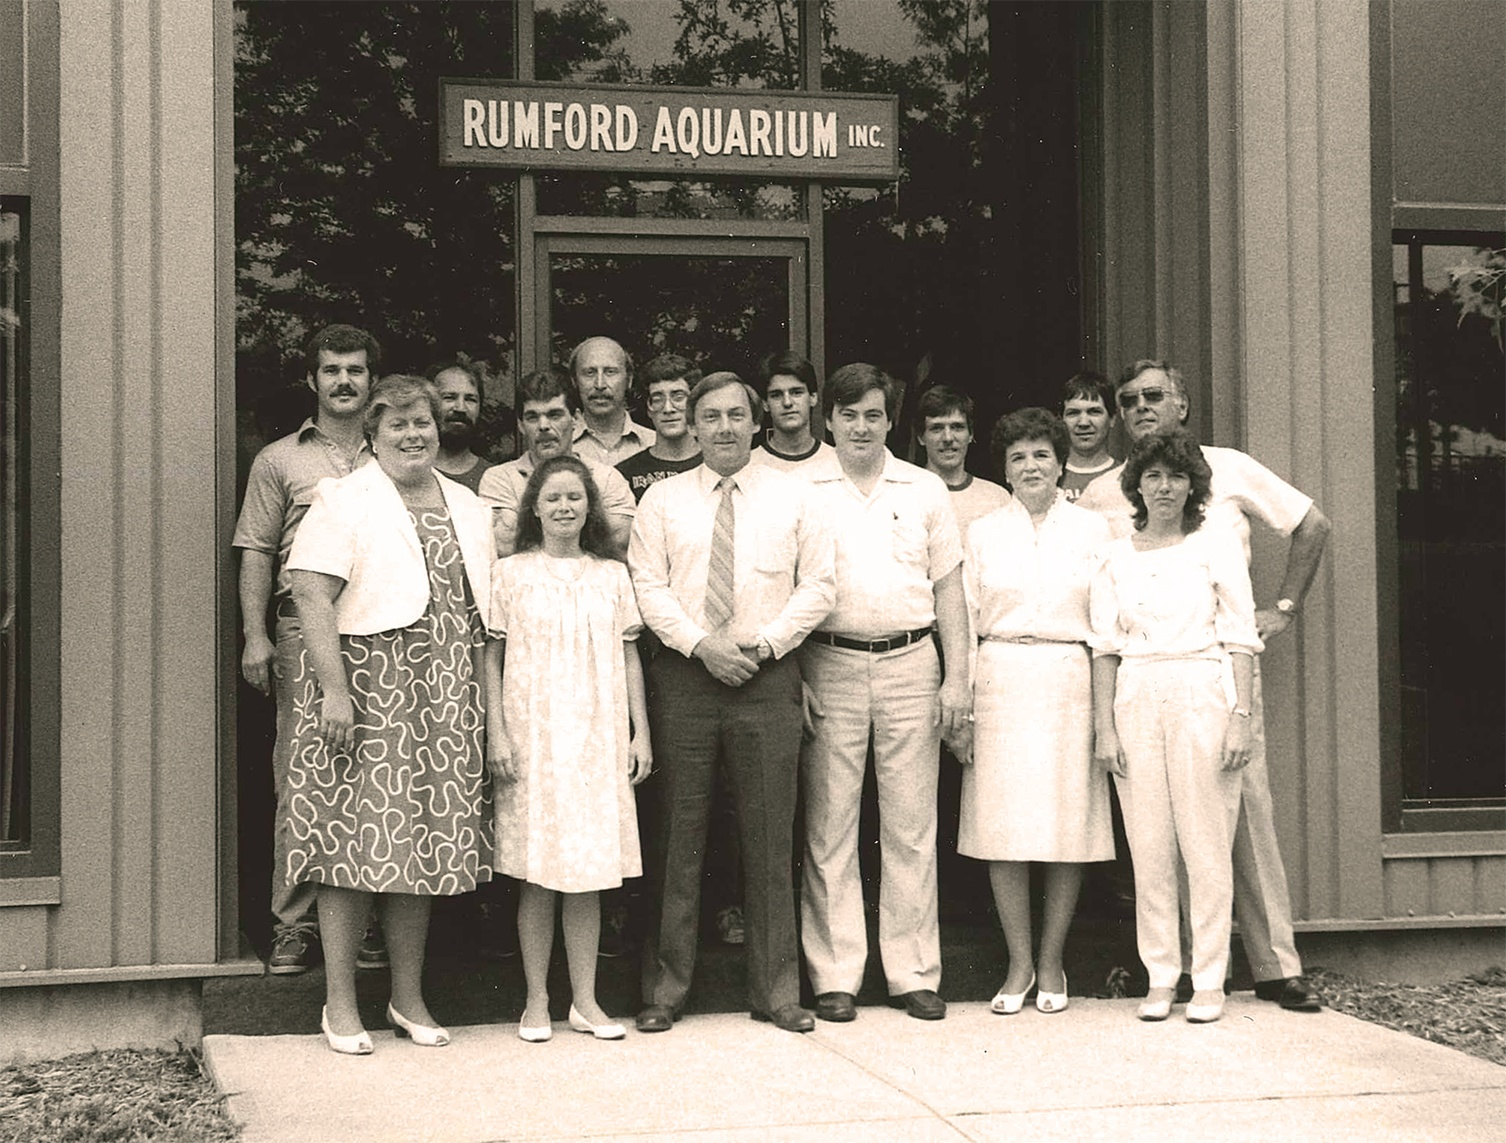 Rumford Aquarium Employees - 1970's